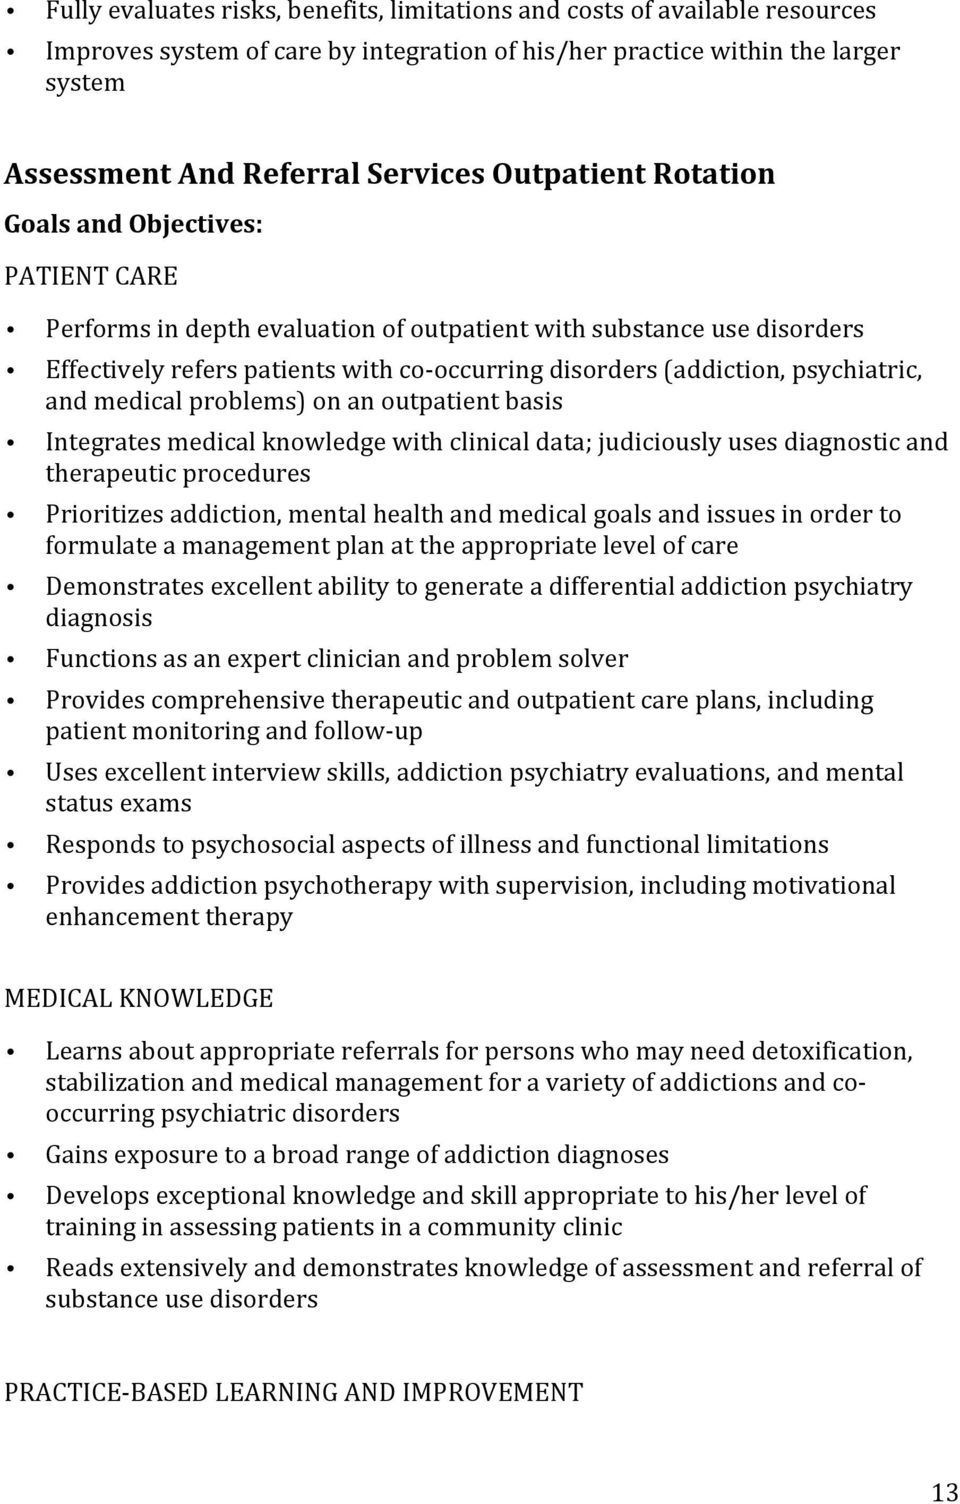 psychiatric, and medical problems) on an outpatient basis Integrates medical knowledge with clinical data; judiciously uses diagnostic and therapeutic procedures Prioritizes addiction, mental health